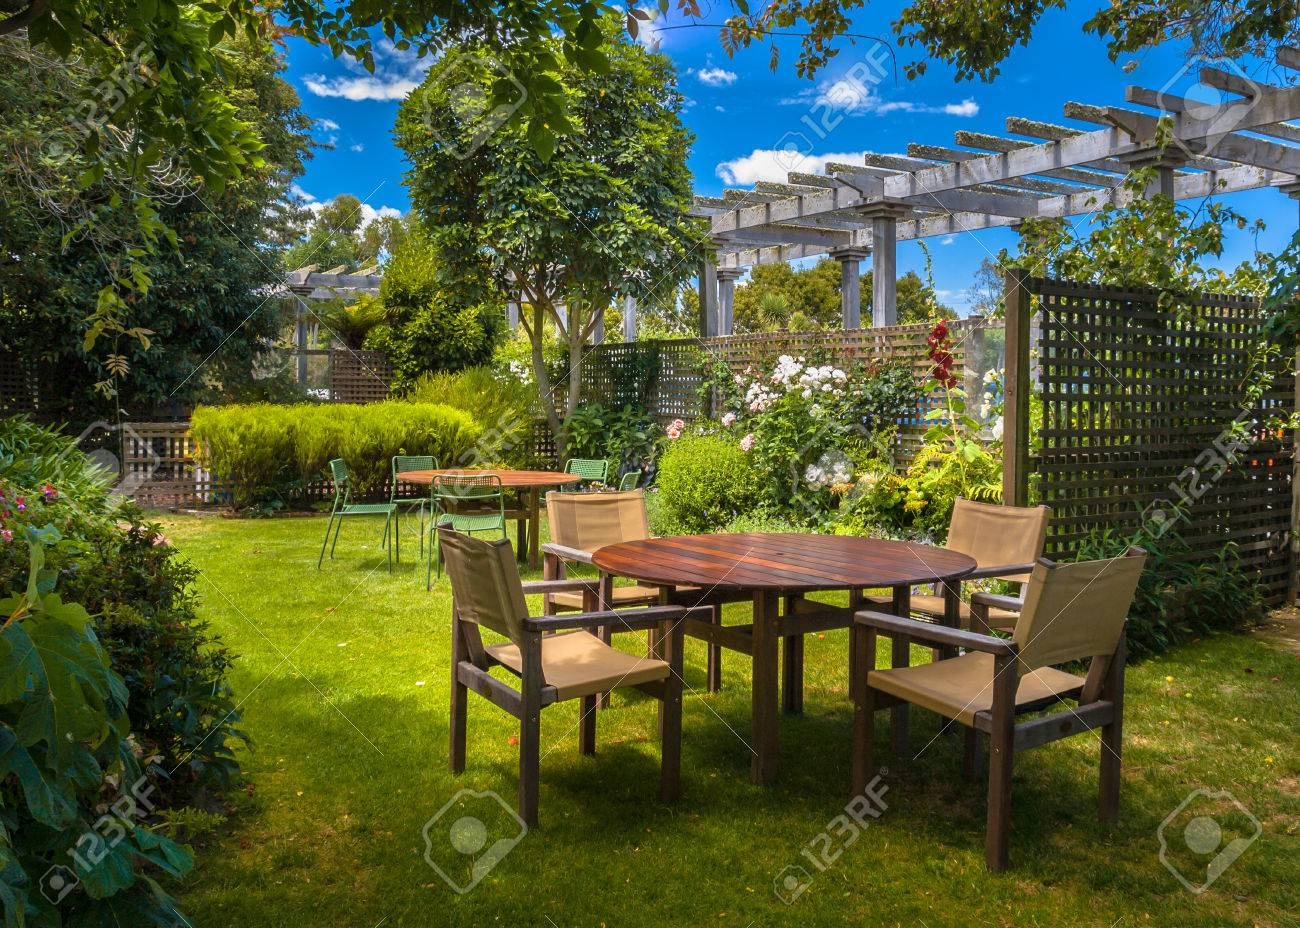 home backyard with garden table set in sunny a lush garden with